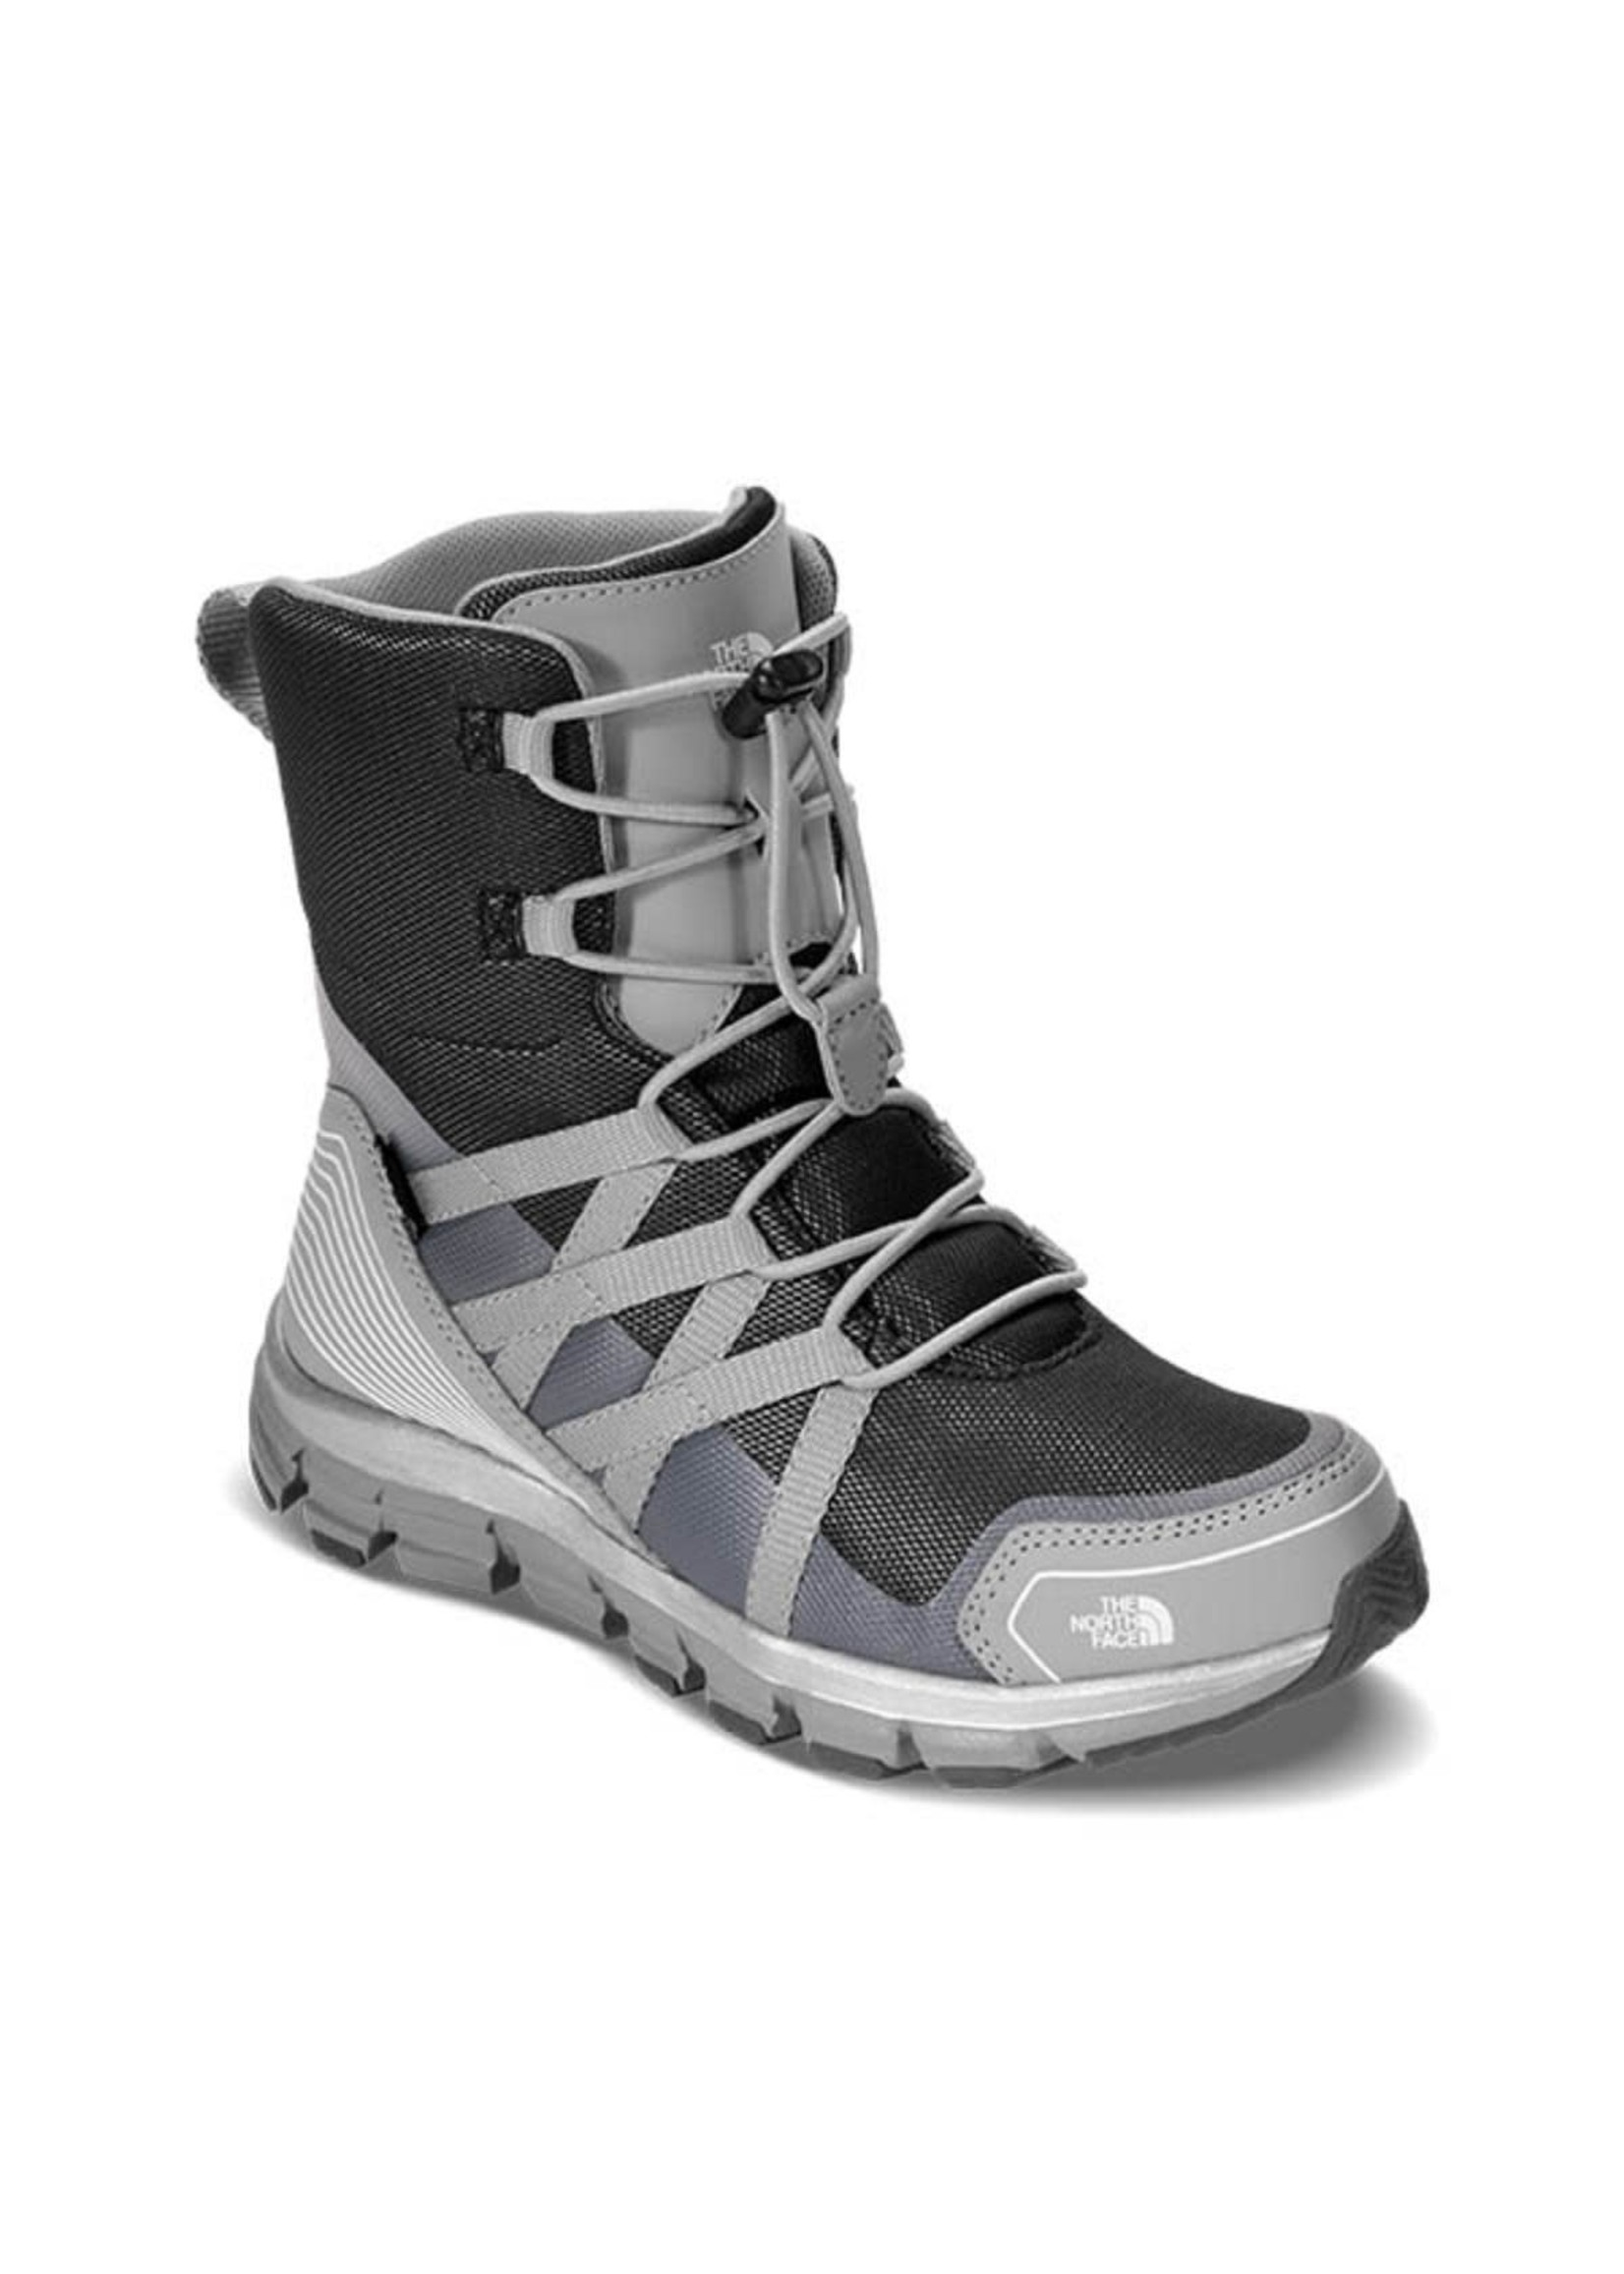 THE NORTH FACE Bottes Winter Sneaker / 03 / Gris